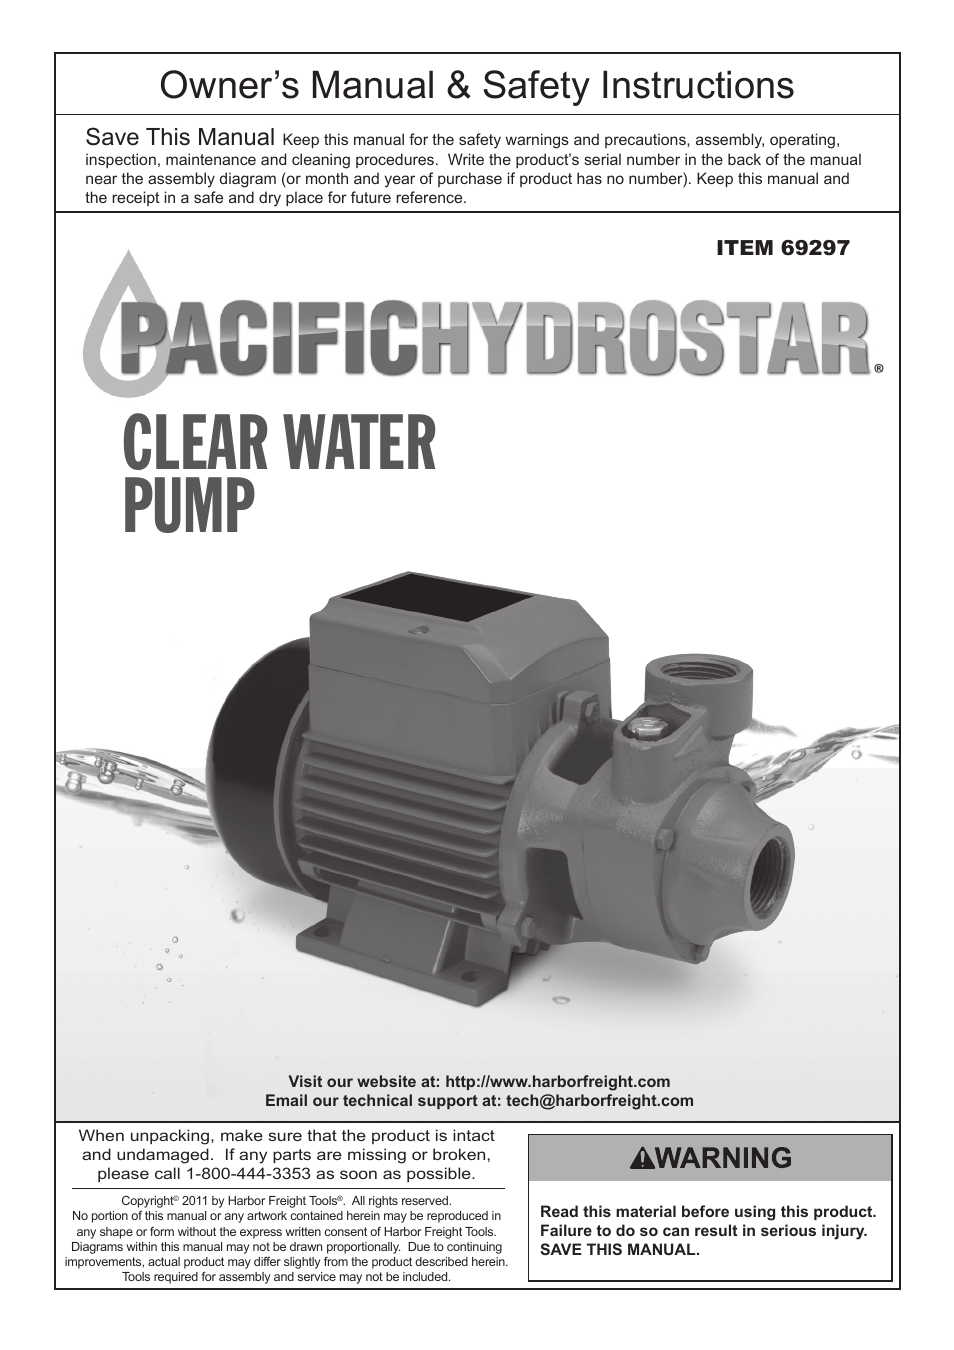 Pacific Hydrostar Water Pump Wiring Diagrams Books Of Diagram Home Pumps Fuse Box Harbor Freight Tools Clear 69297 User Manual 8 Pages Rh Manualsdir Com